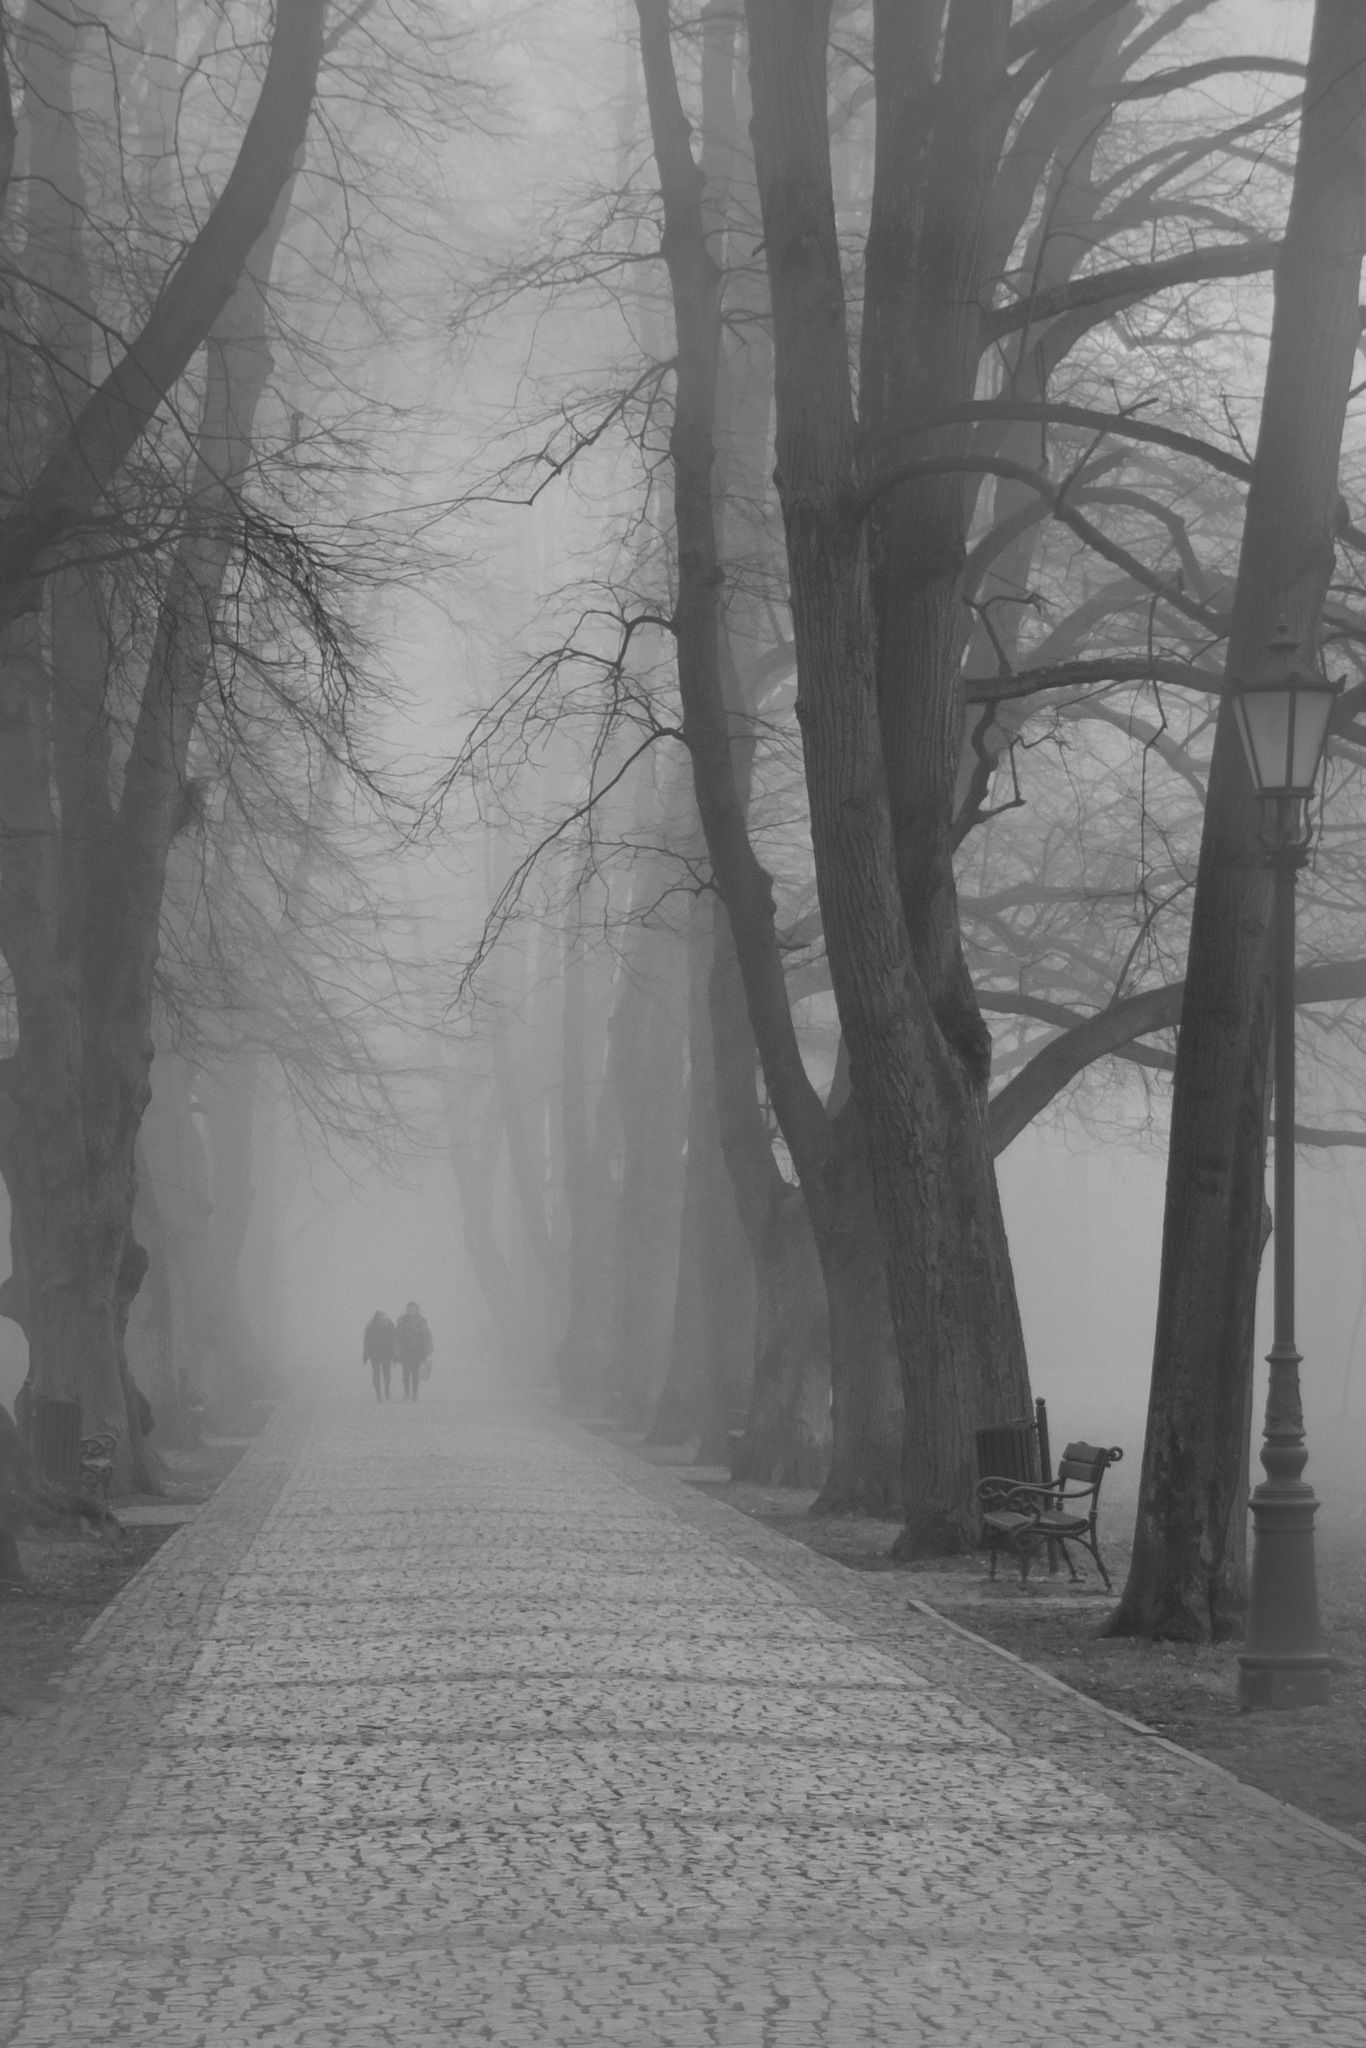 In to fog by WiSt